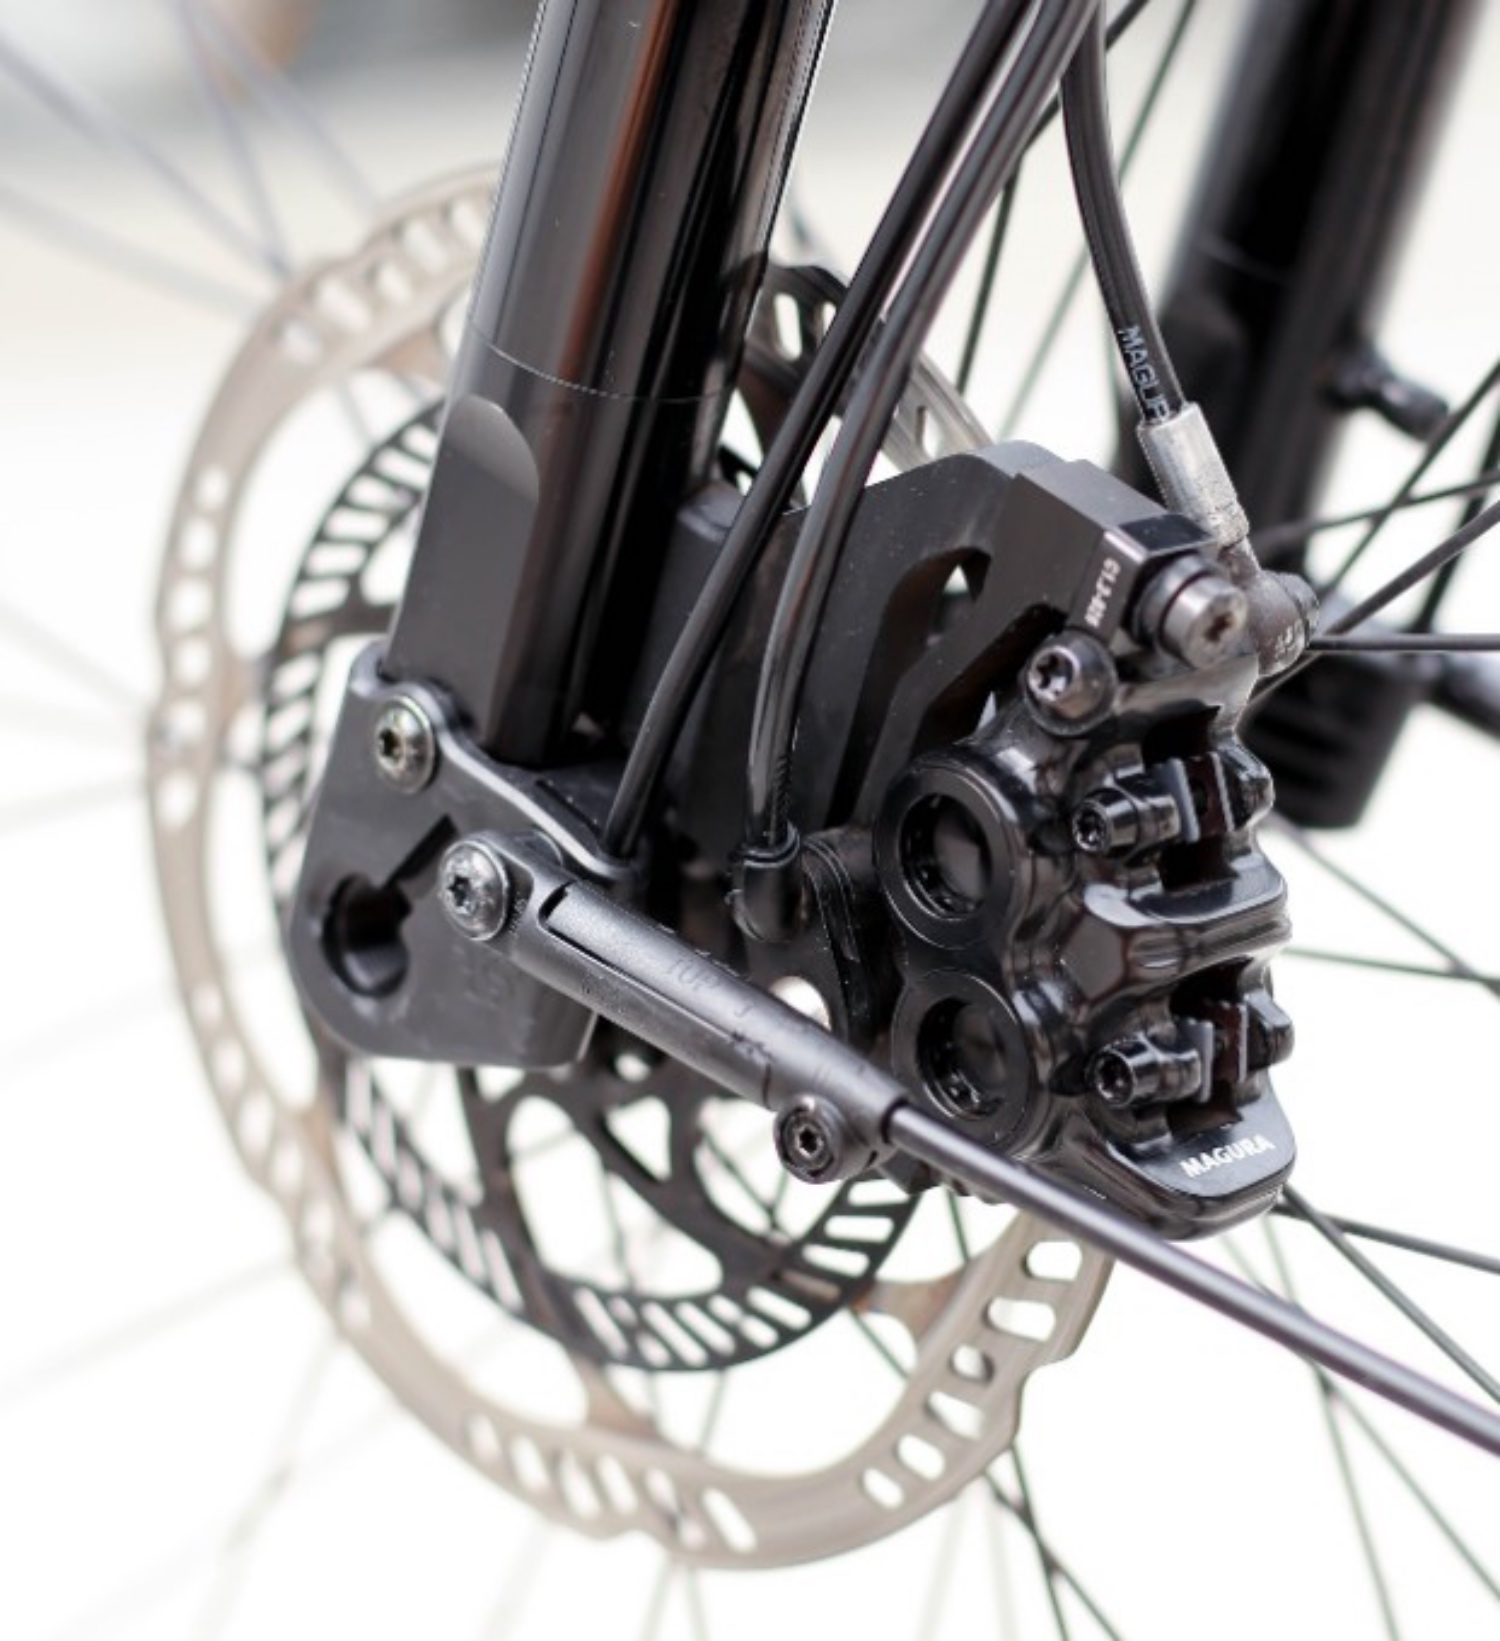 Magura offers innovative new mobility solutions